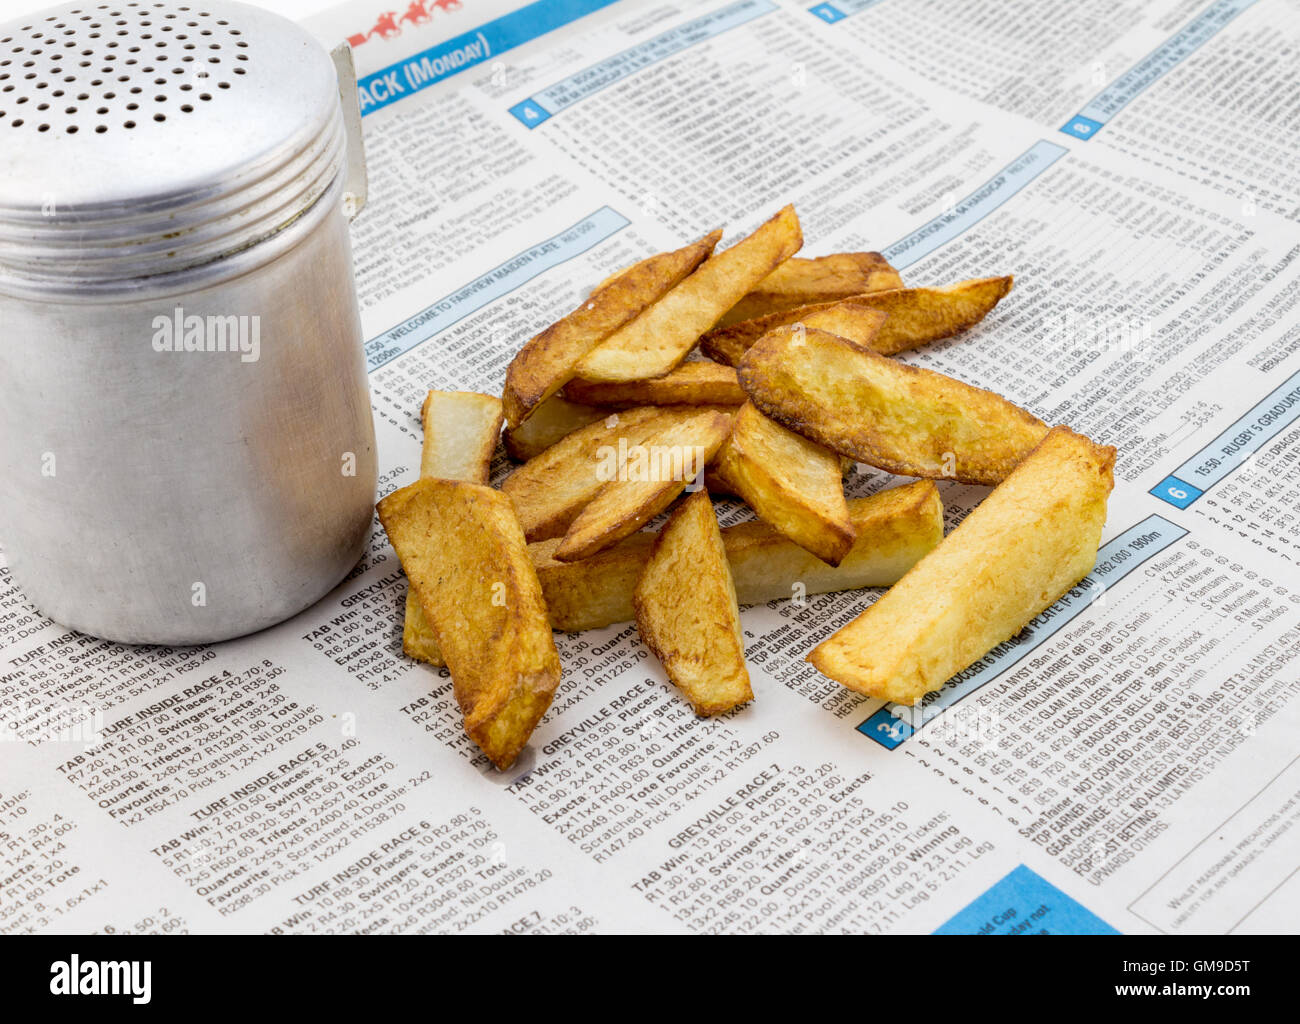 Small portion of french fries on news paper - Stock Image